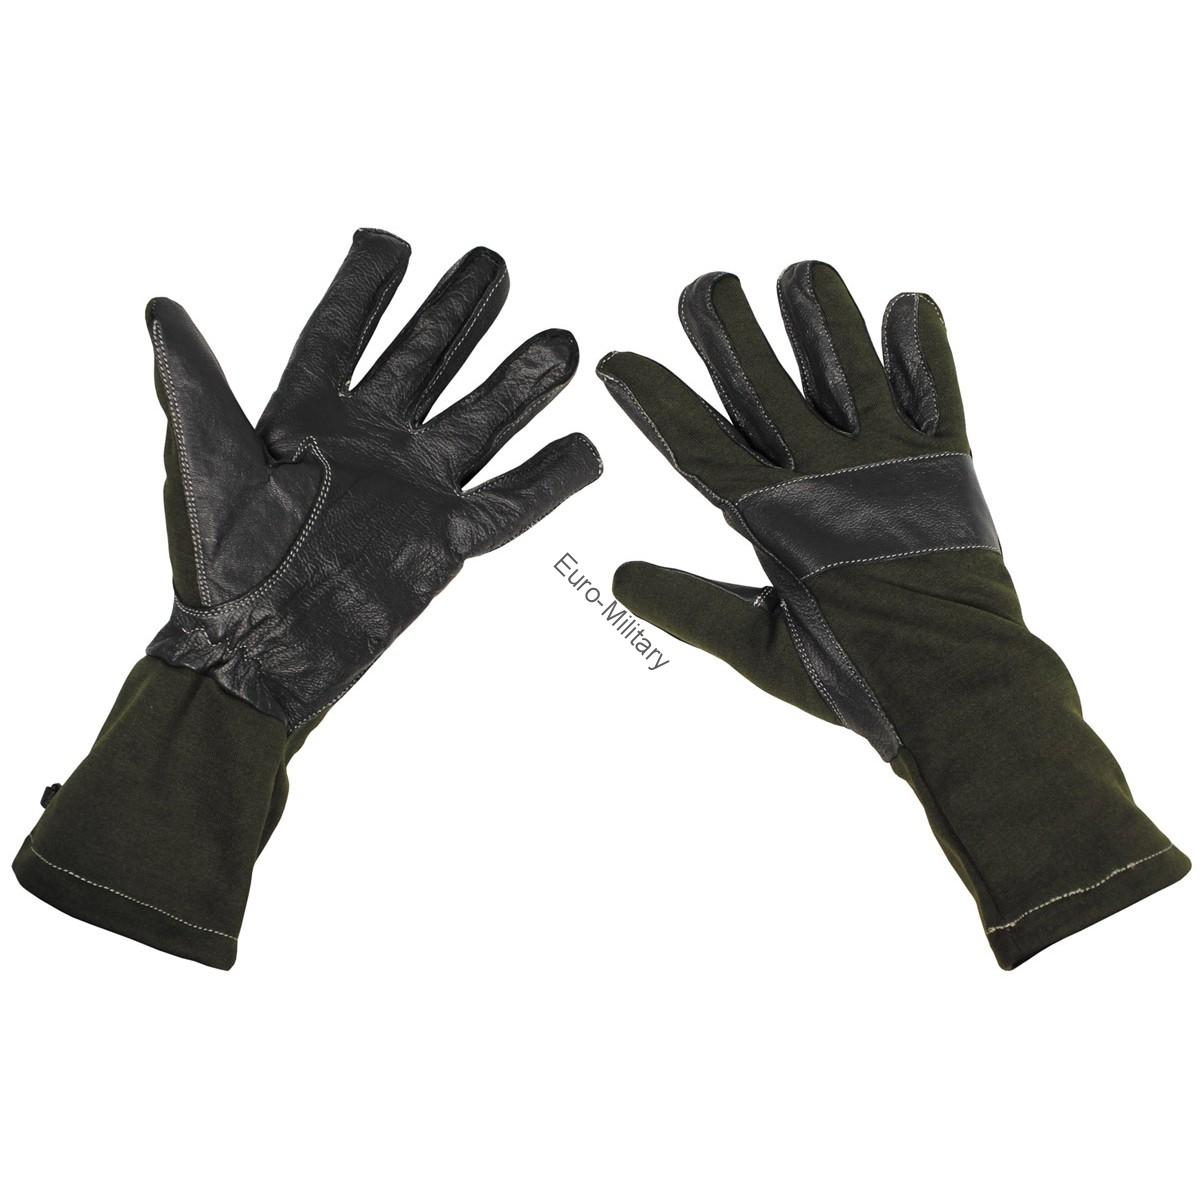 BW German Army Combat Gloves Long Gaiter Leather Trim - OD Green